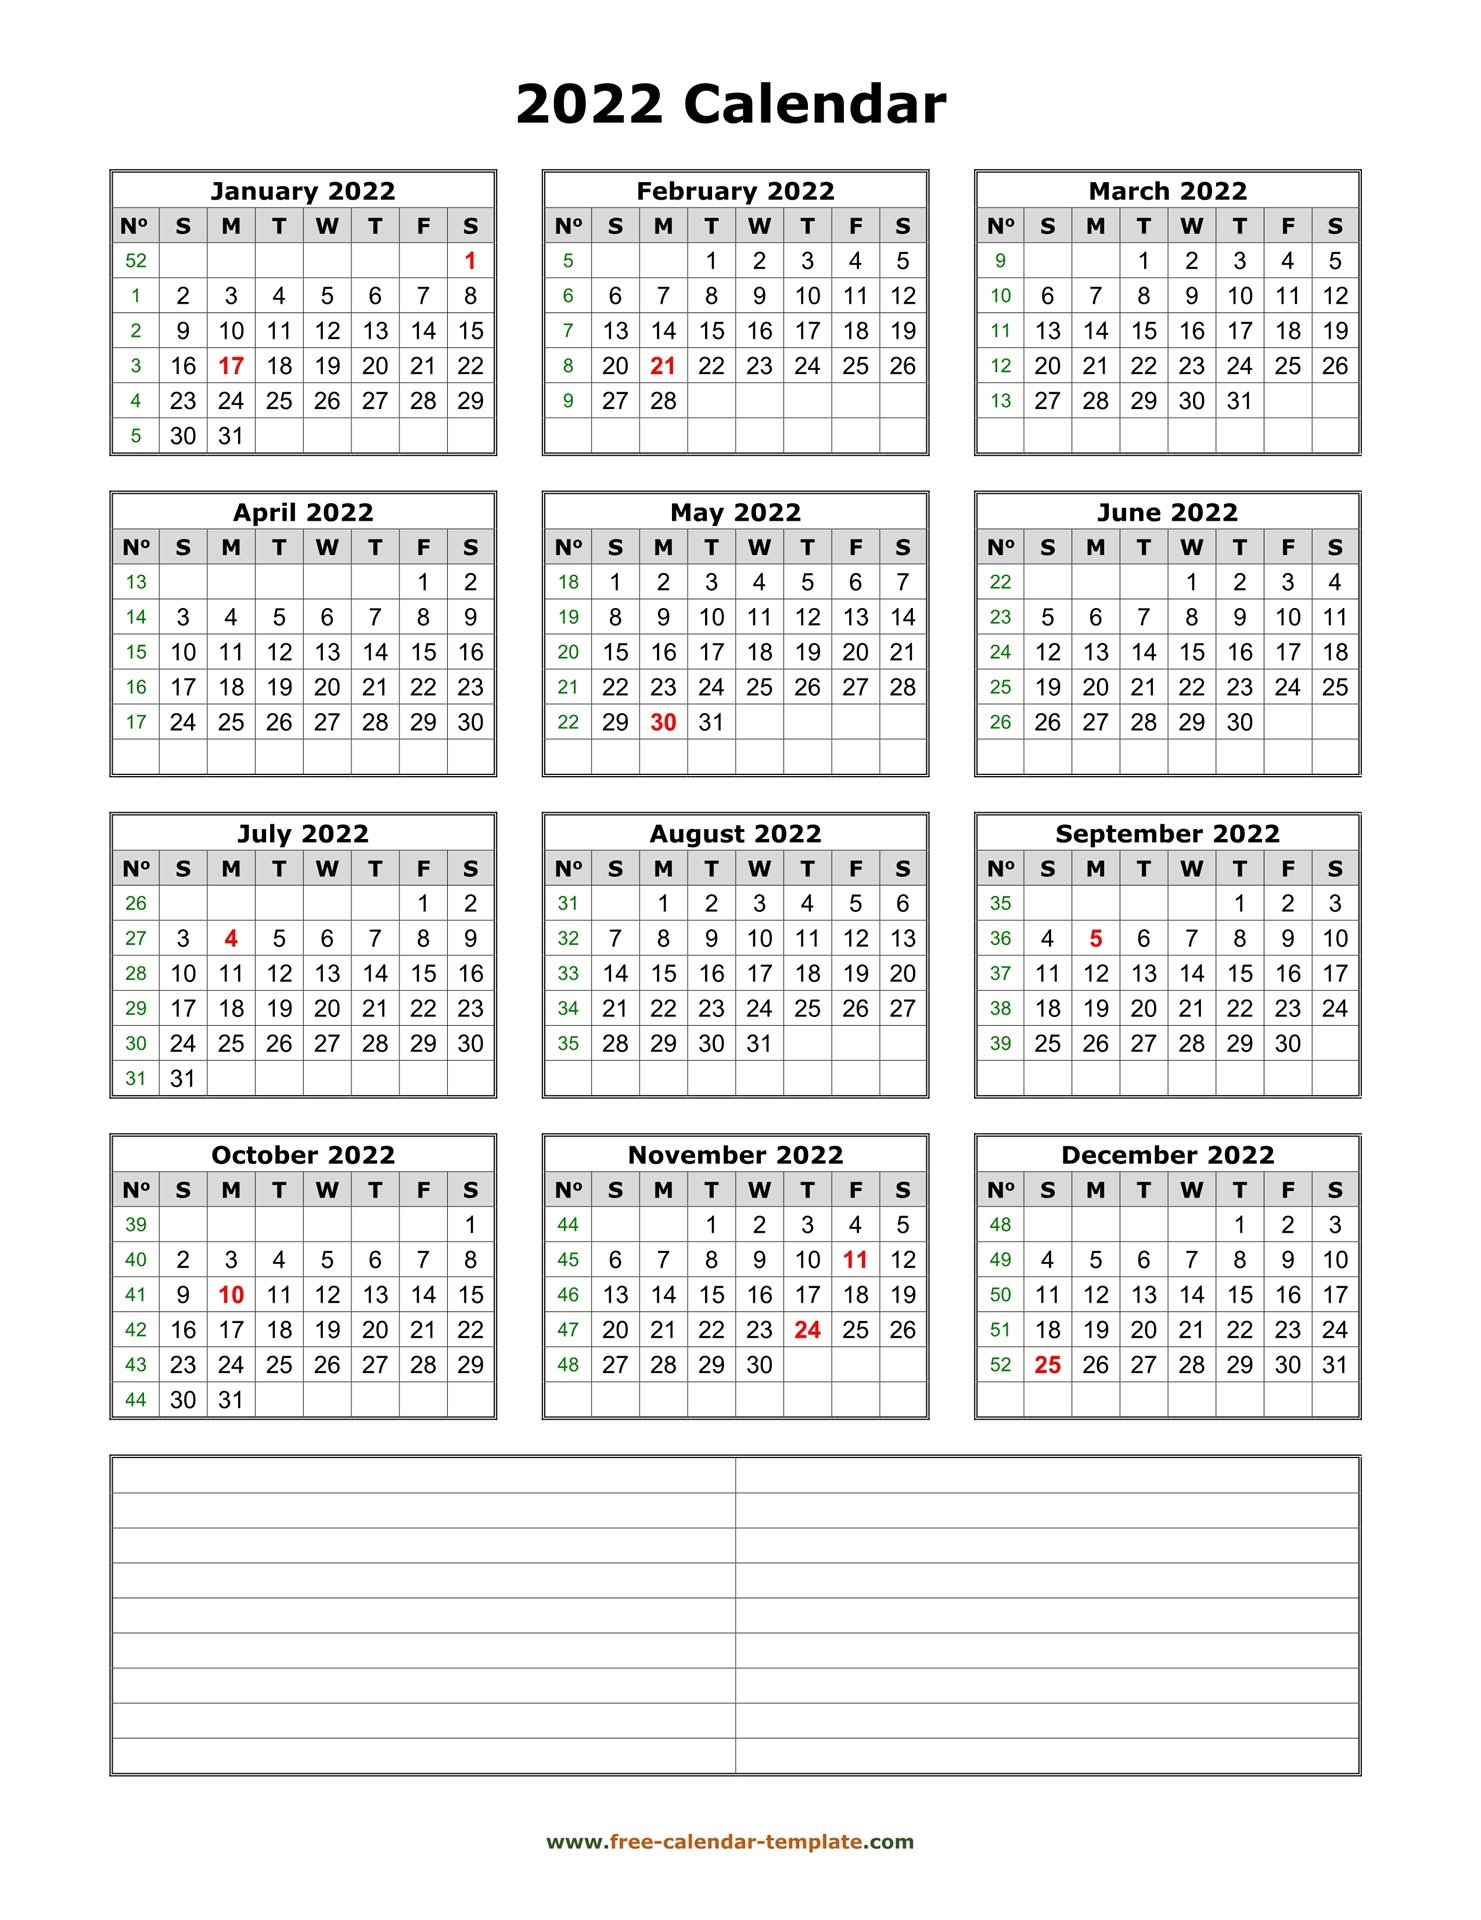 Printable Yearly Calendar 2022 | Free-Calendar-Template with Free Printable Monthly Planner 2022 Photo